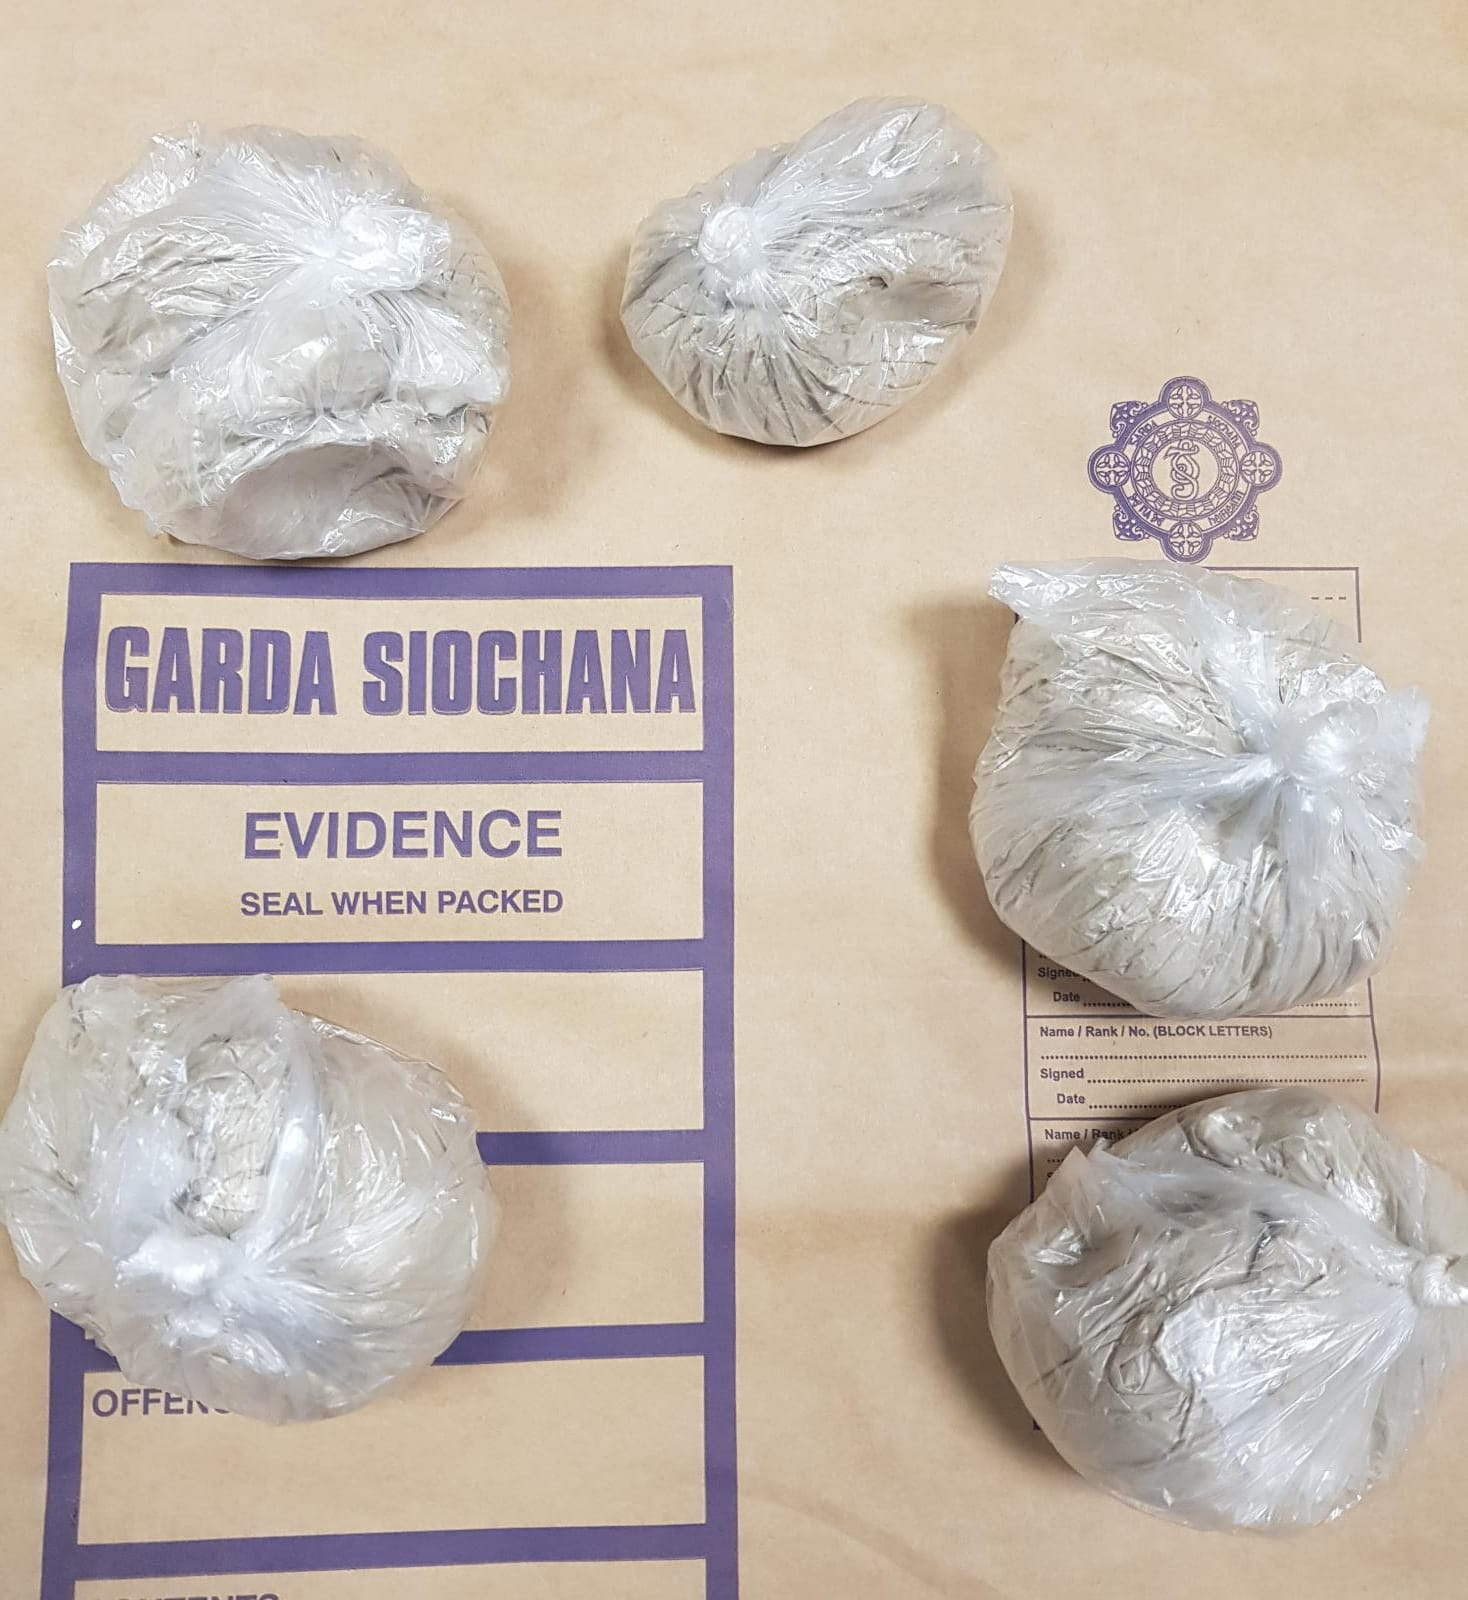 €90,000 worth of heroin seized in south Kilkenny